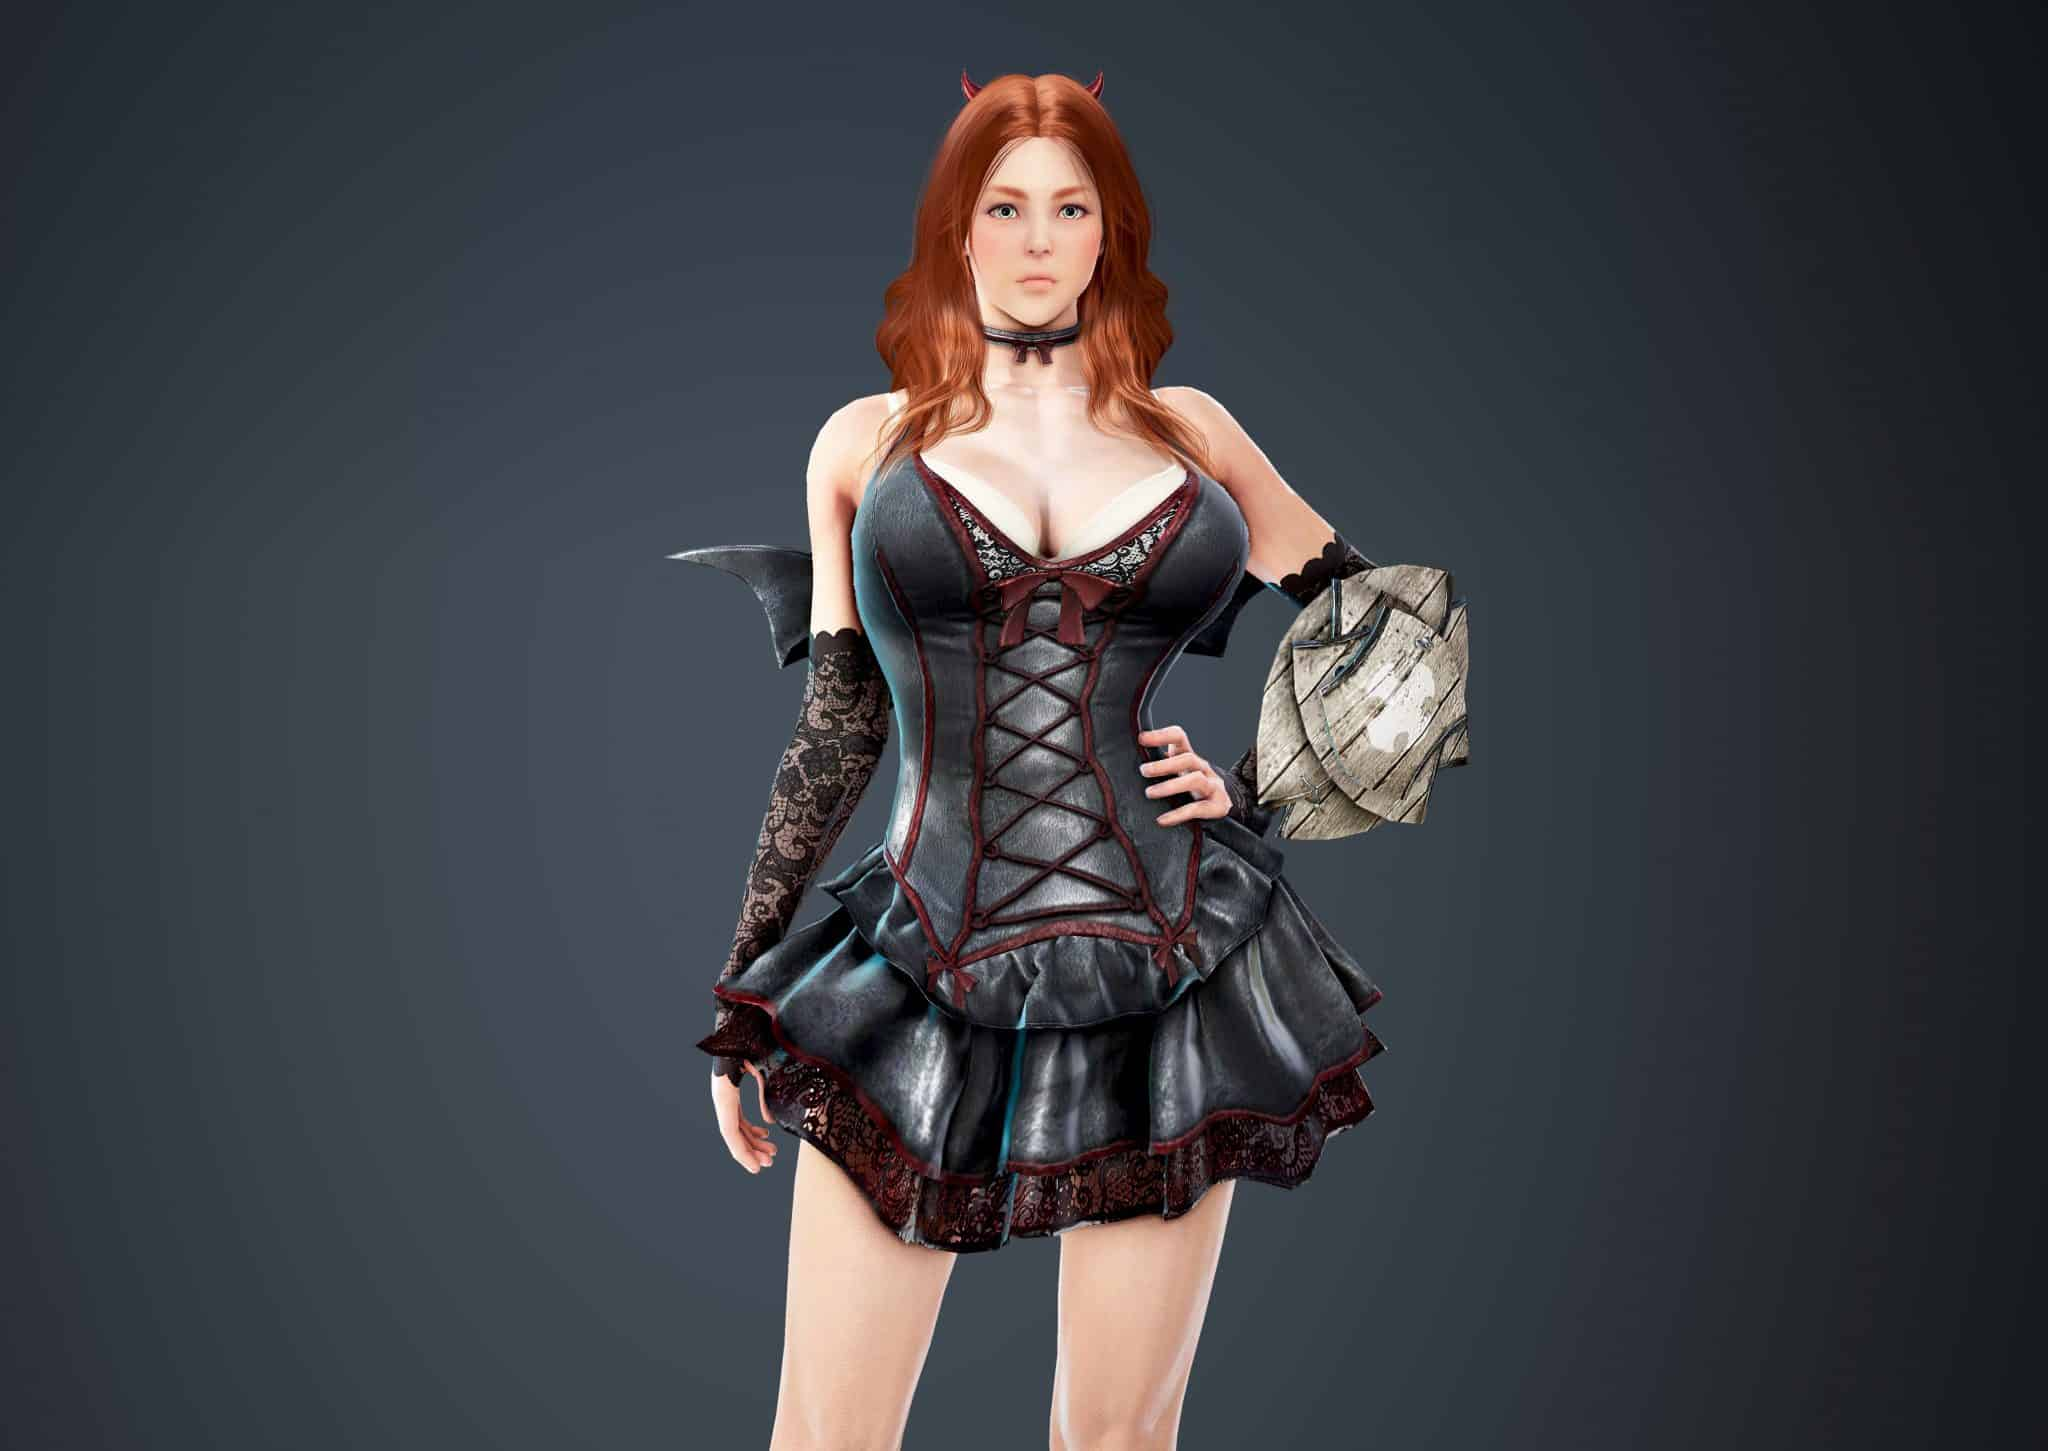 Valkyrie Bloody Dress, Bloody Outfit Set, Halloween 2018, Black Desert Online